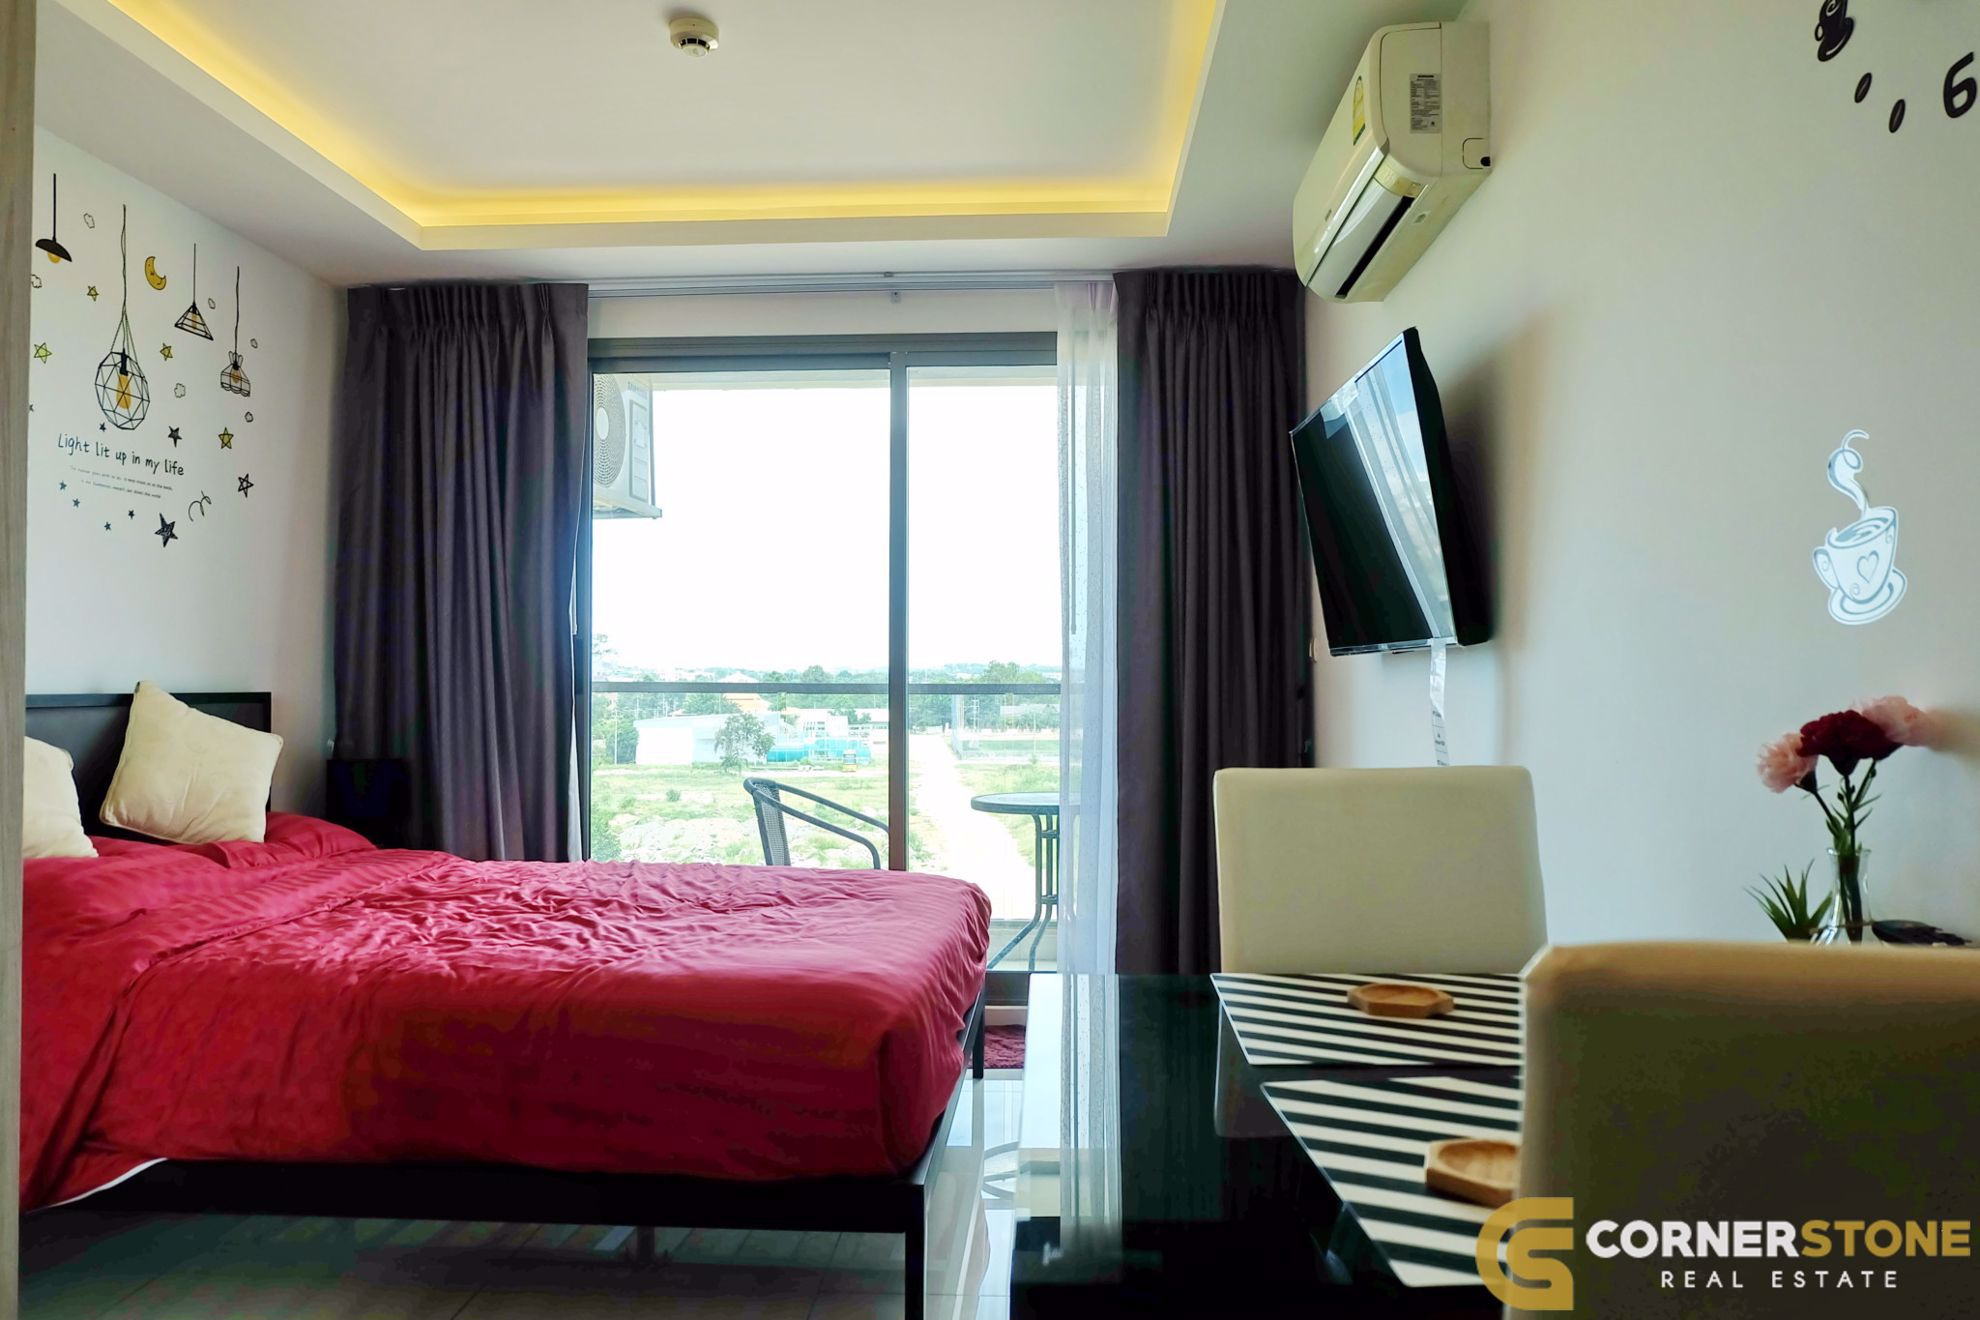 Condo in Laguna Beach Resort 3 - The Maldives Jomtien 1821